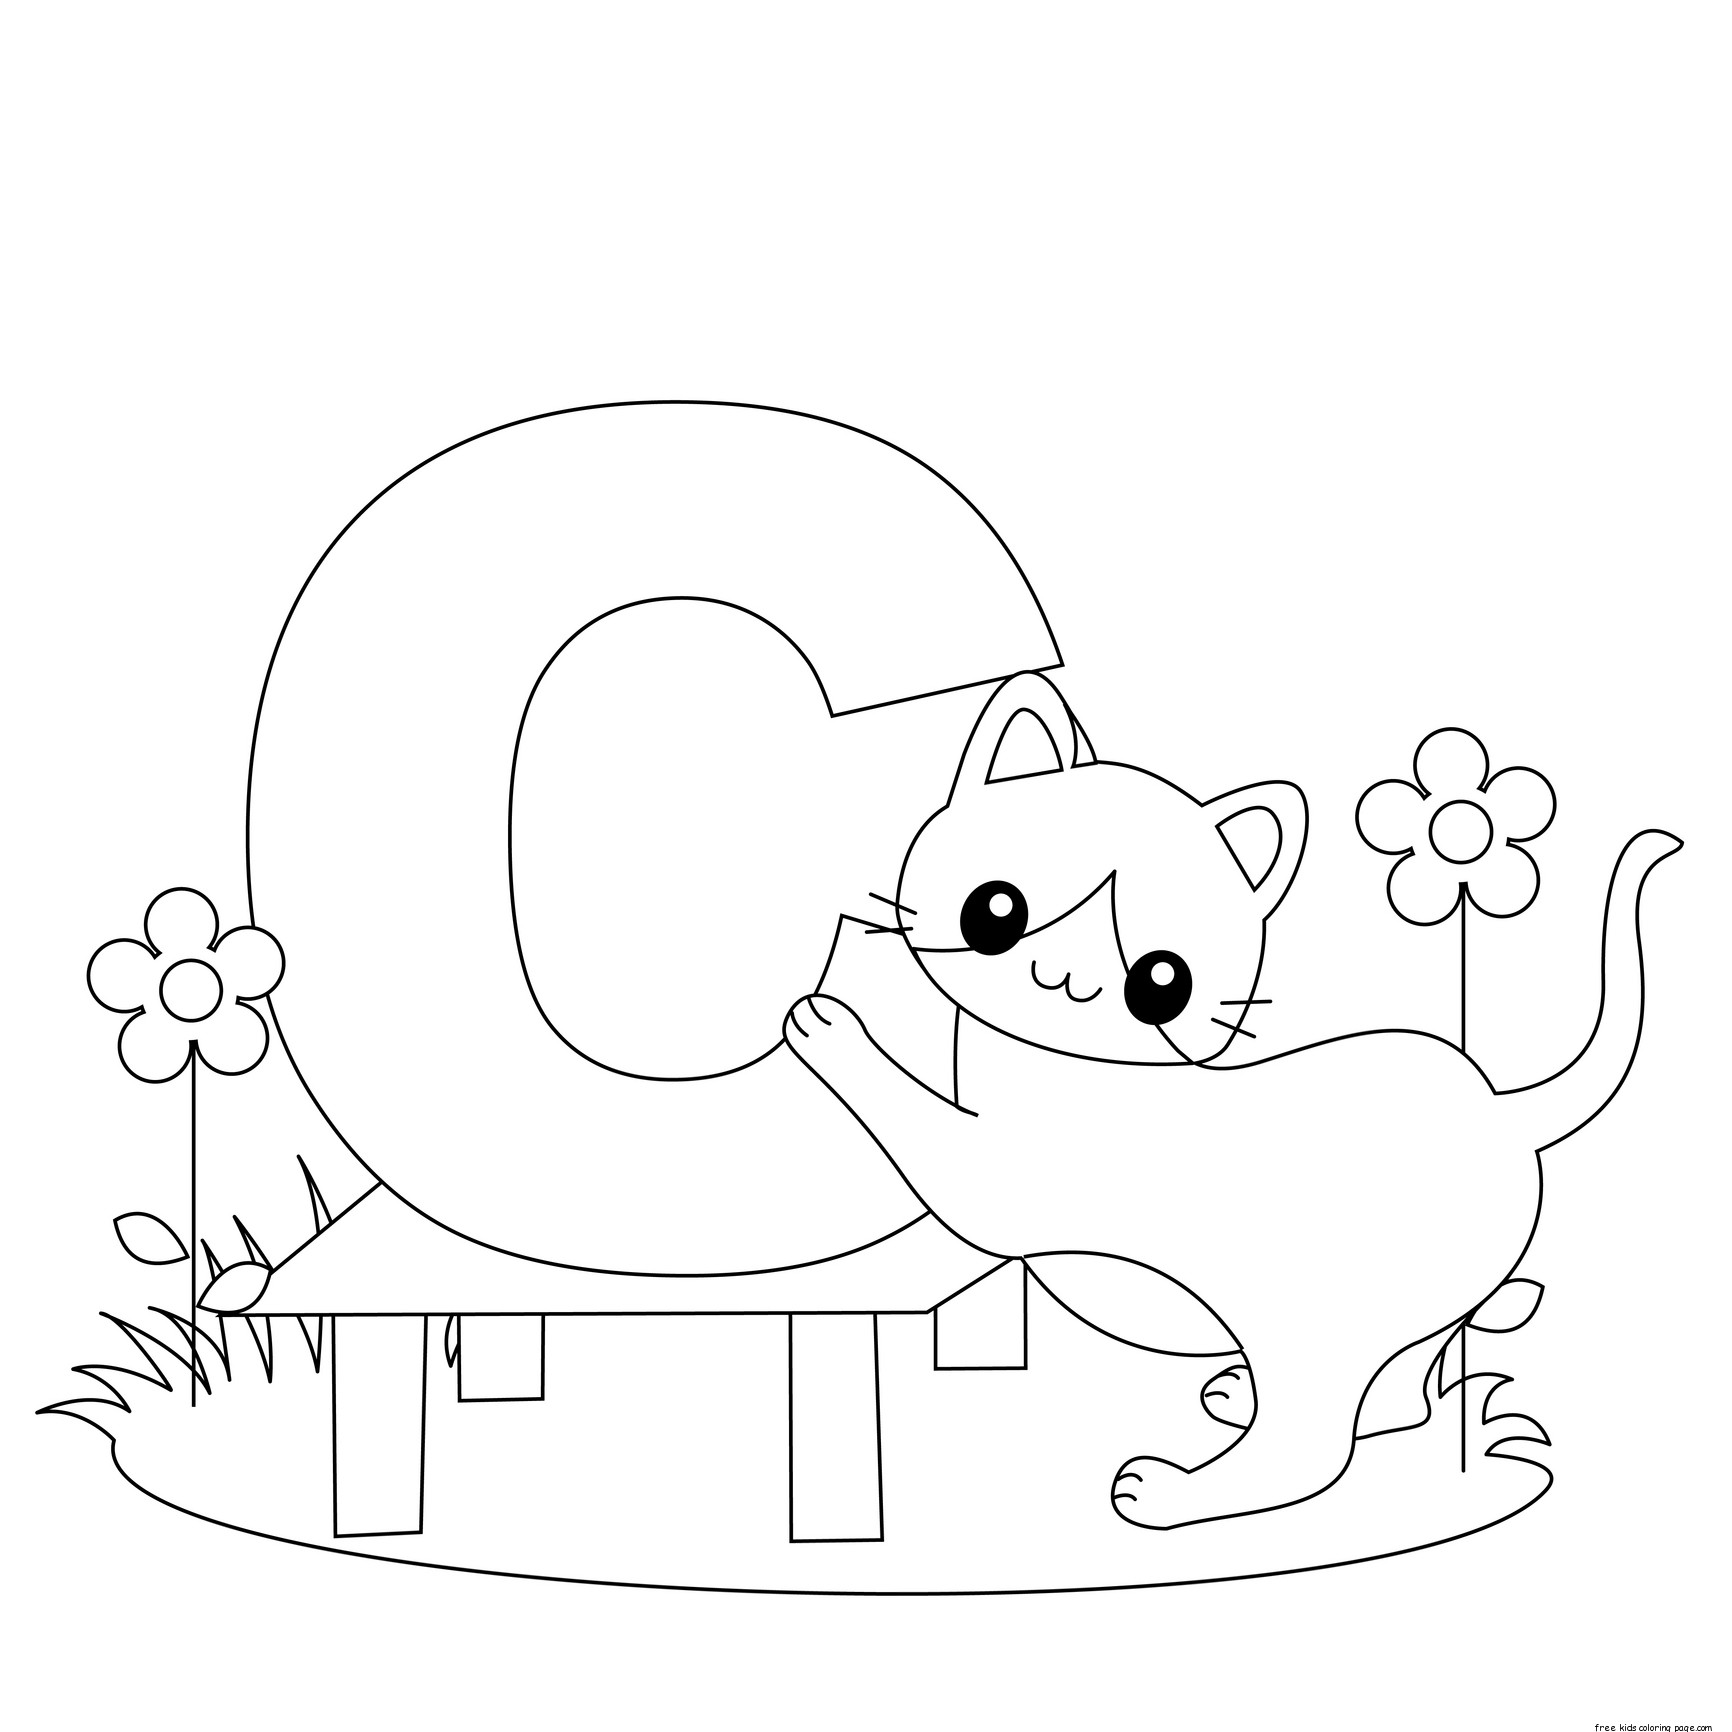 Printable alphabet worksheets letter c for cat for for Free alphabet coloring pages for toddlers